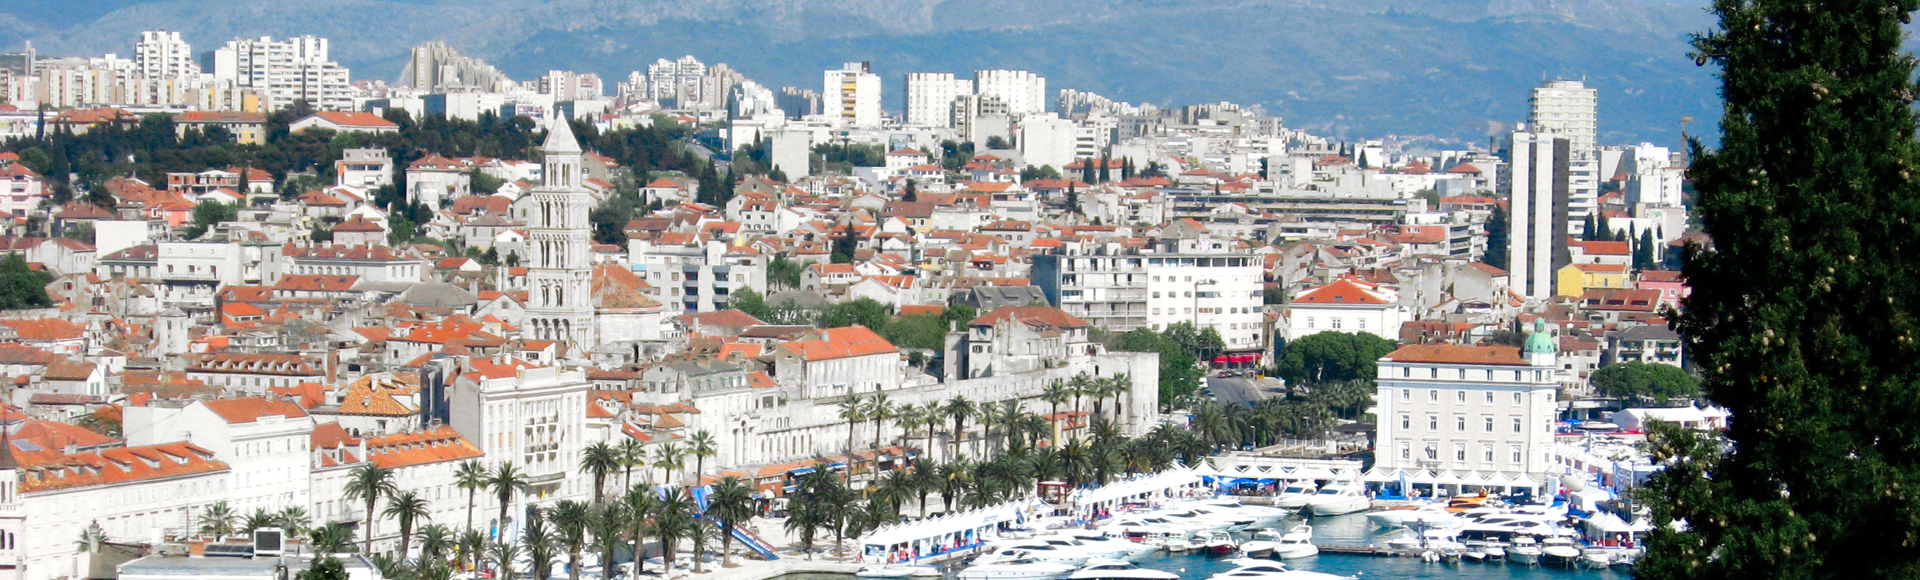 A view of Split's waterfront